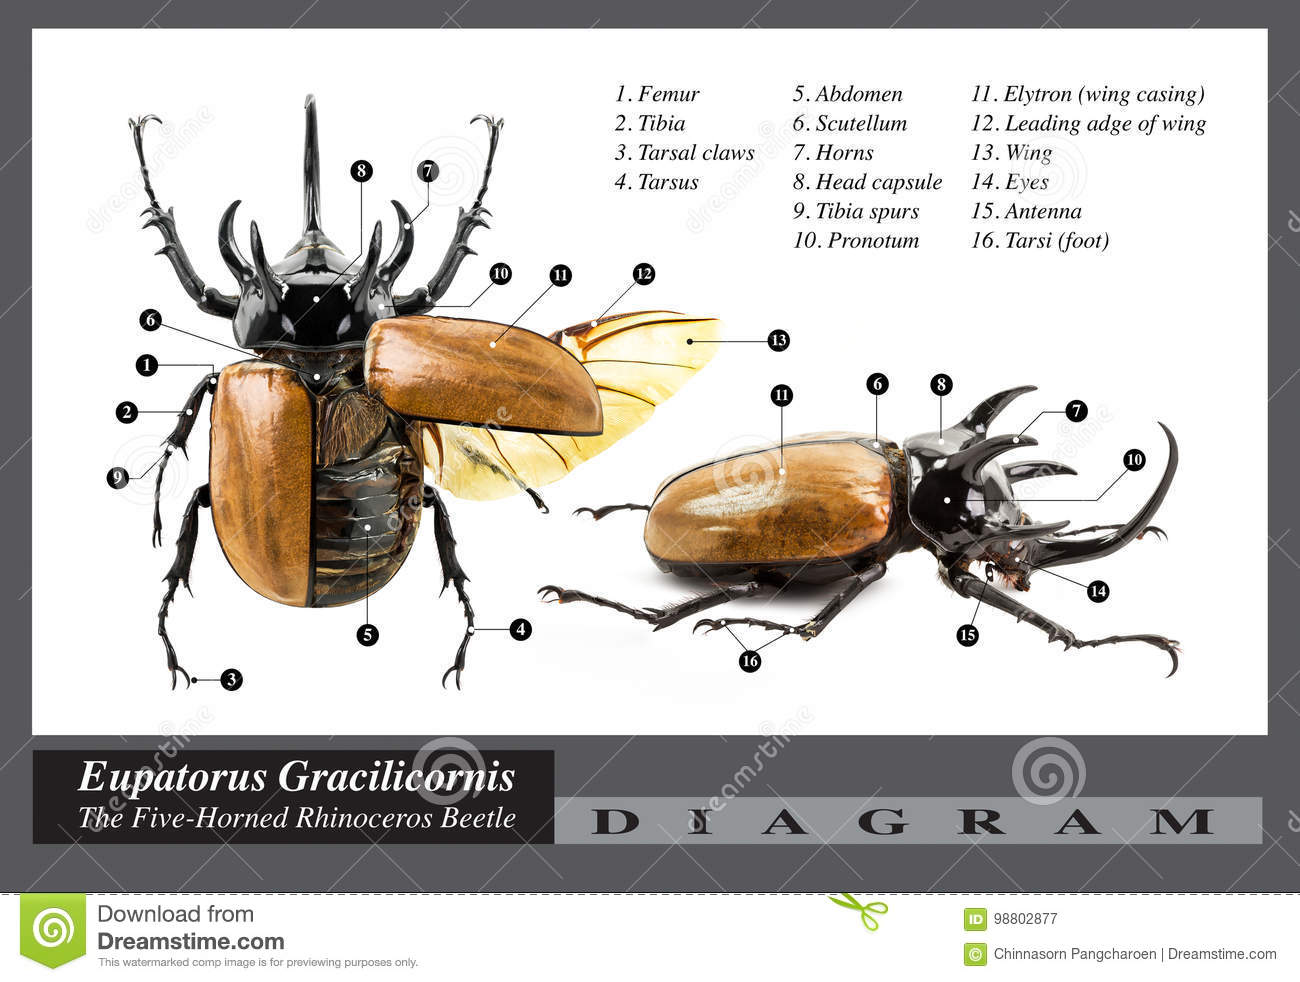 hight resolution of eupatorus gracilicornis beetle diagram